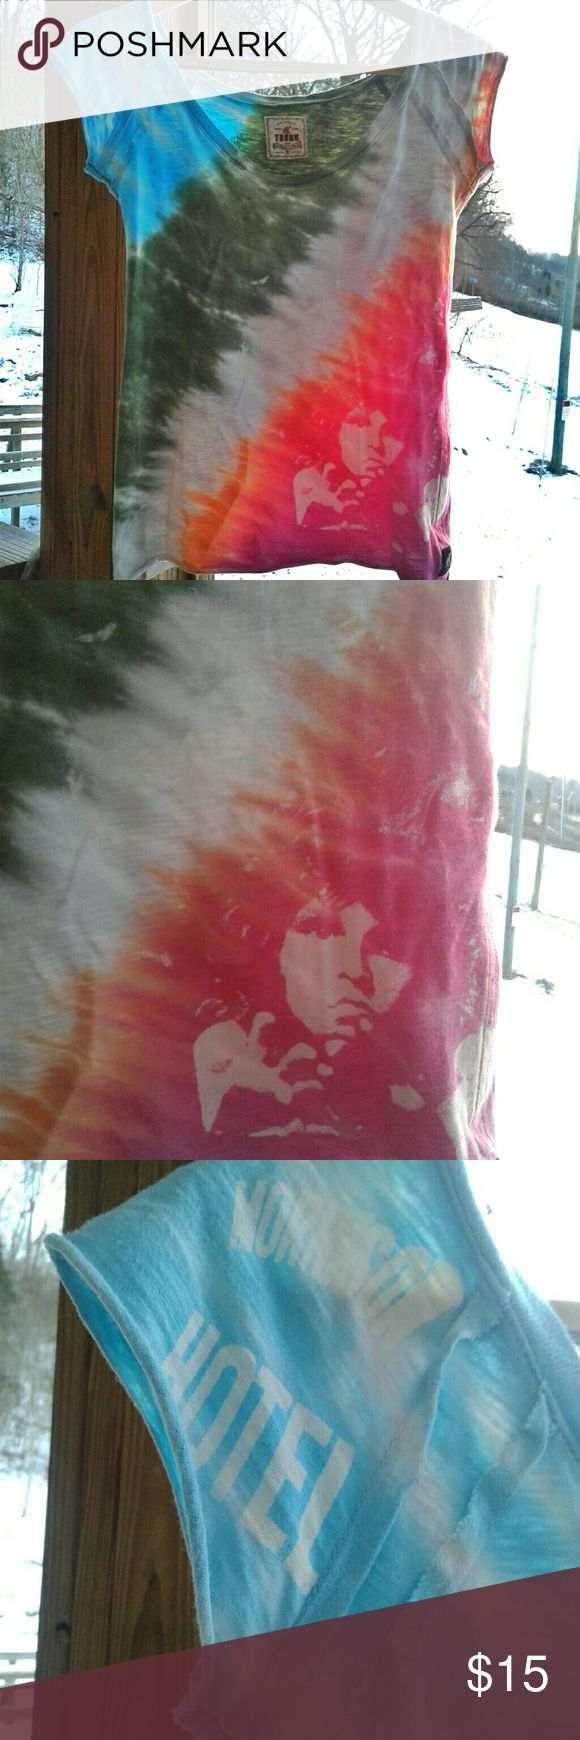 💚 Jim Morrison, The Doors tie dye T This shirt it to die for y'allll! I love it...alot. buttt I have 4 Doors shirts now so I guess I can let one go...this one is just a bit snug on me..it fits true to size and is a bit stretchy but I have a slight beer/wine belly going on sooo...🙄 Trunk Ltd Tops Tees - Short Sleeve